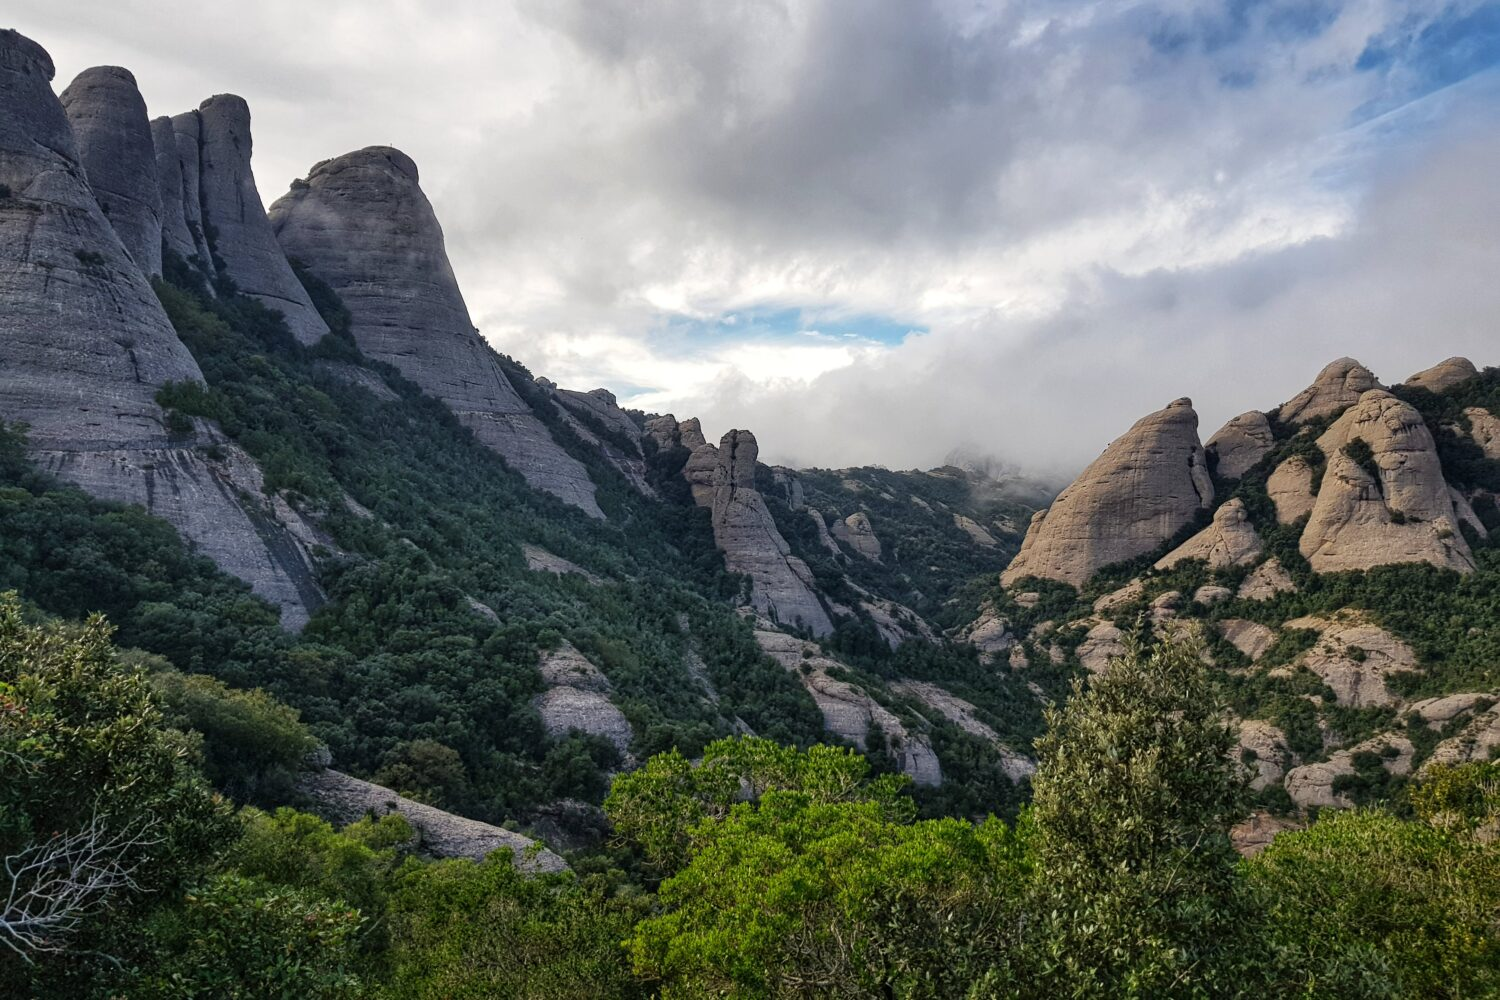 The conglomerate towers in Montserrat